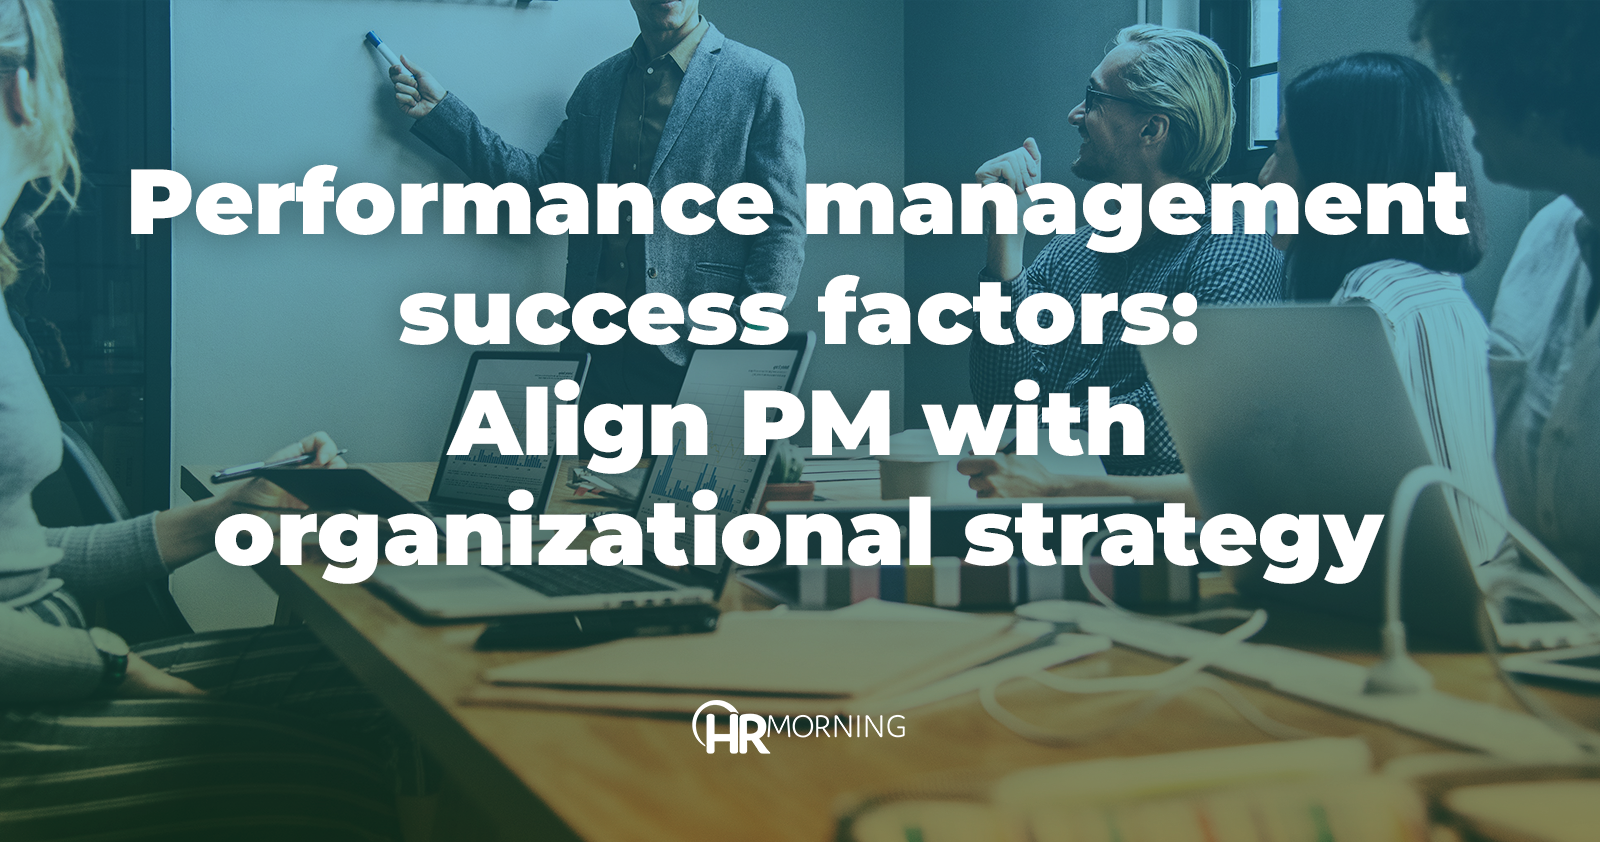 Performance management success factors: Align PM with organizational strategy